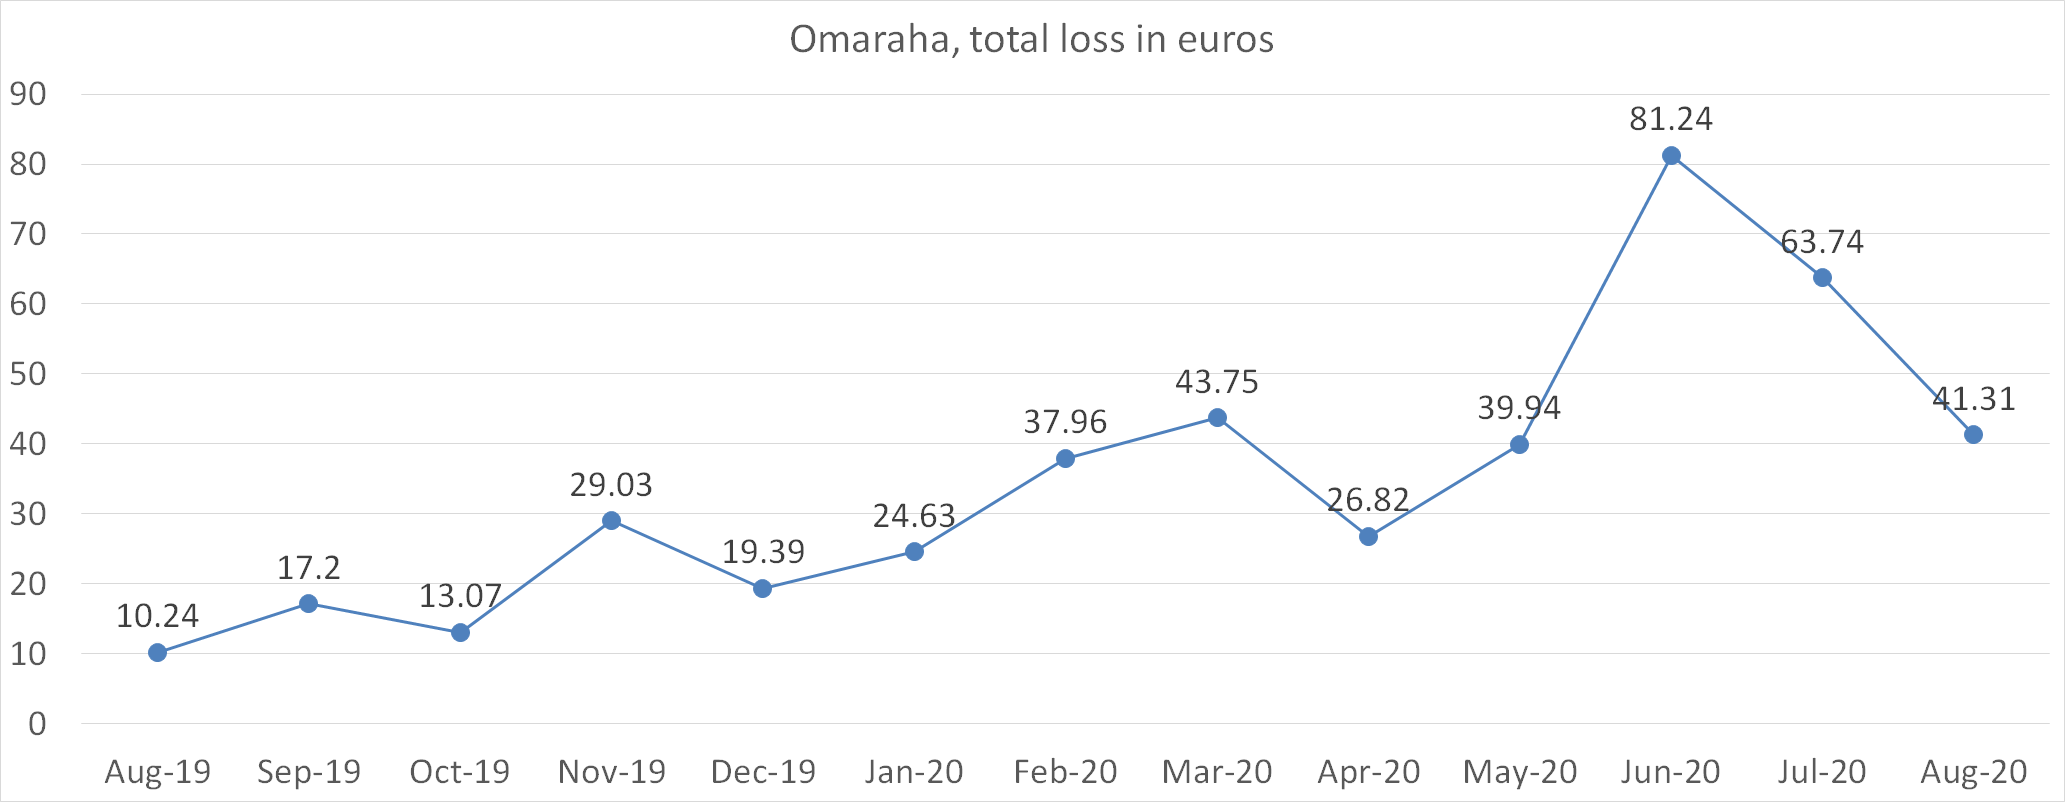 Omaraha, total loss in euros august 2020